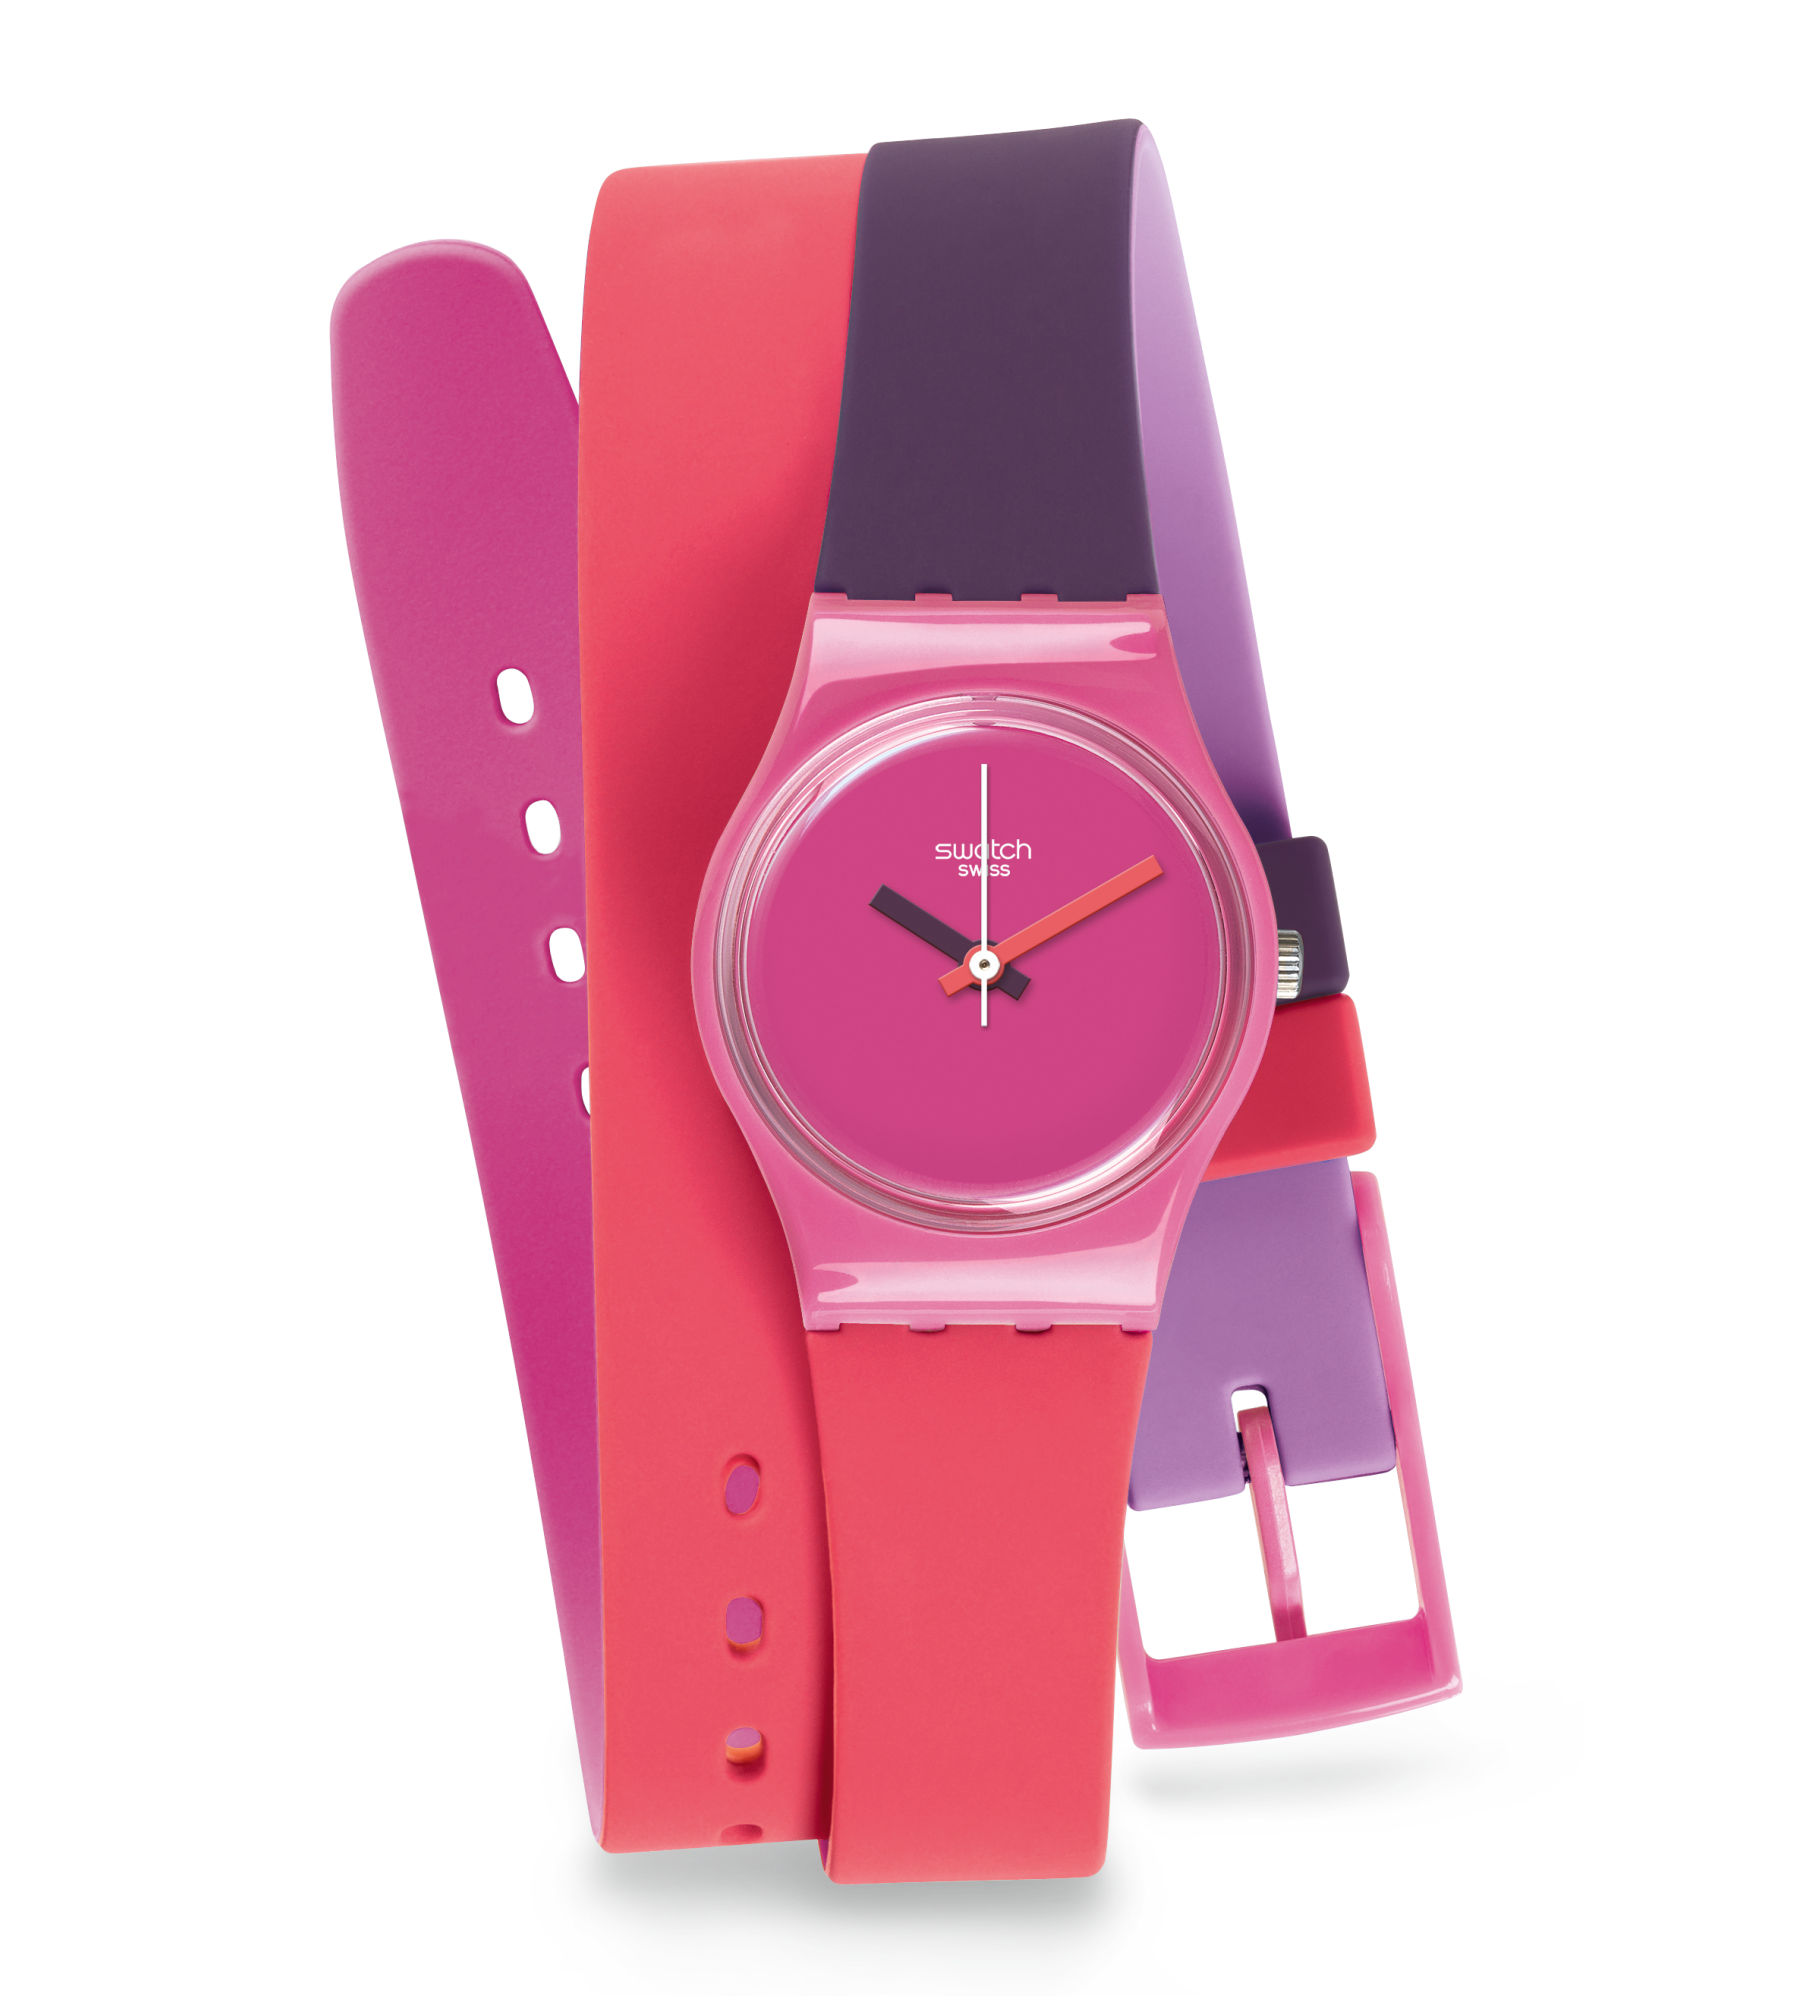 Genskie_chasy_Swatch (37